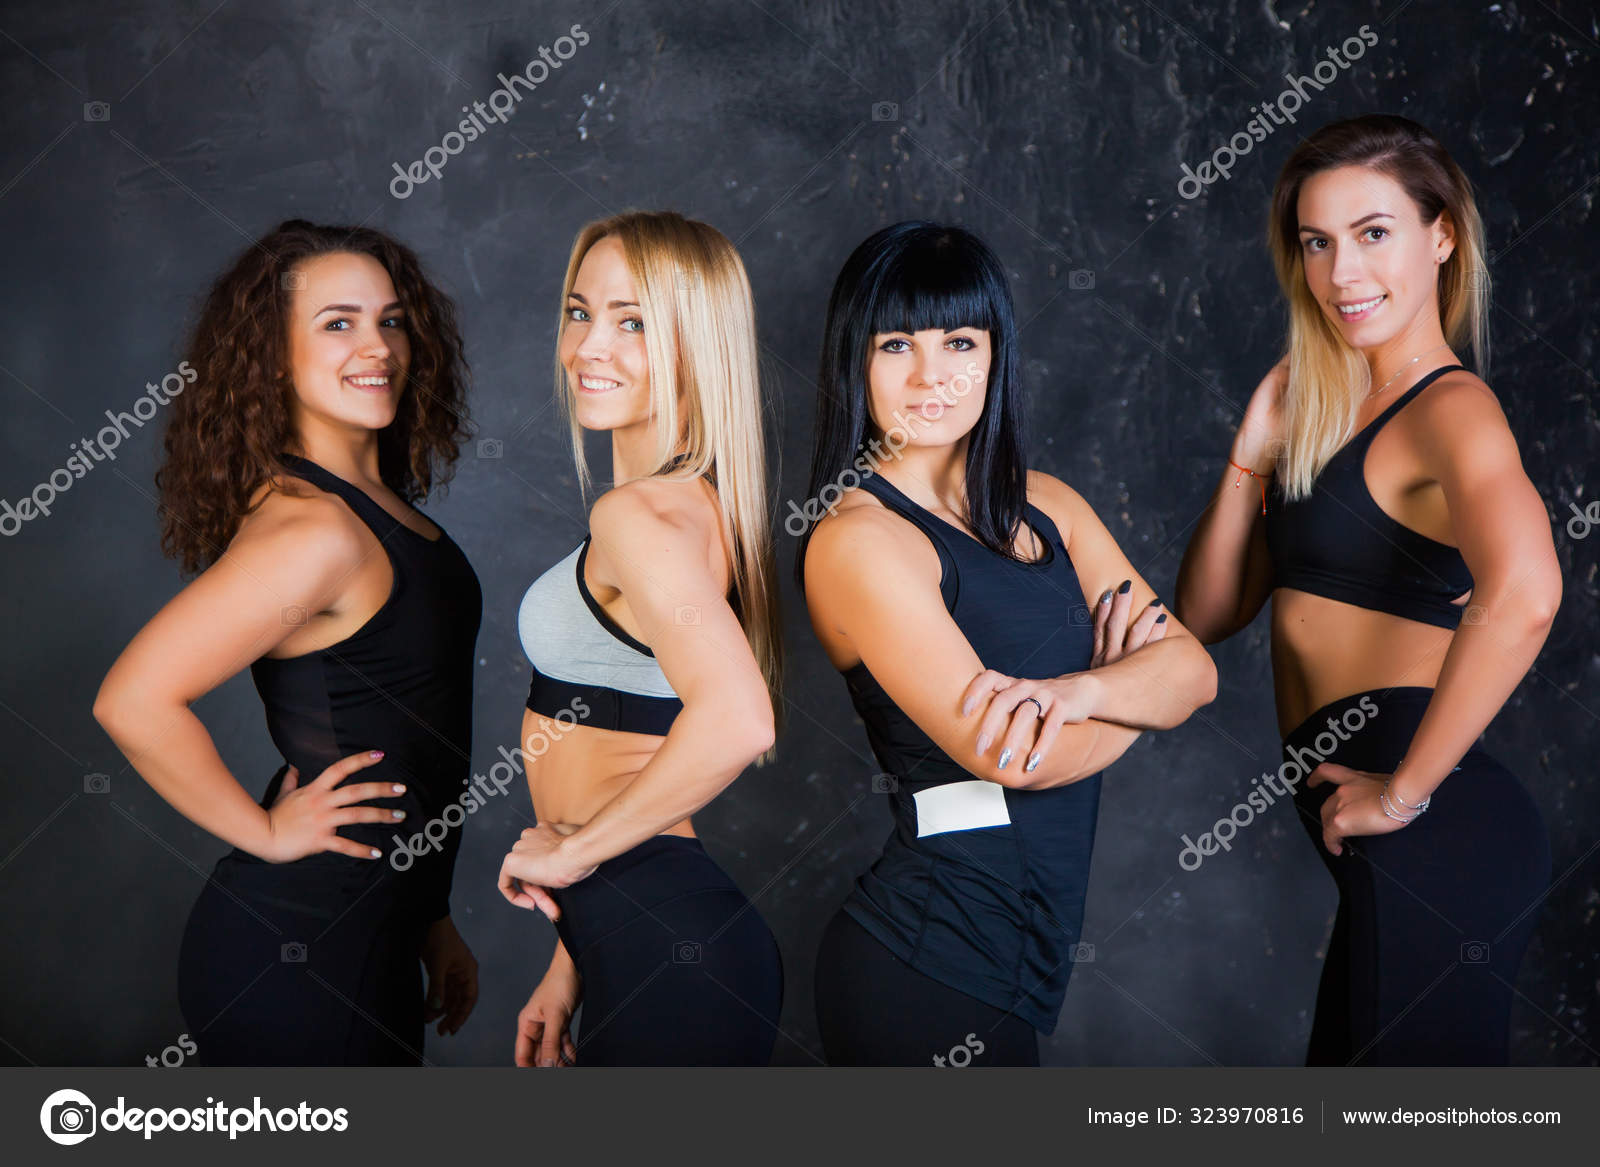 Group Of Four Sportive Fit Women Smile And Pose At Studio On Grey Stock Photo C Klyots 323970816 Titles should be in good taste and include the woman's name if known. https depositphotos com 323970816 stock photo group of four sportive fit html